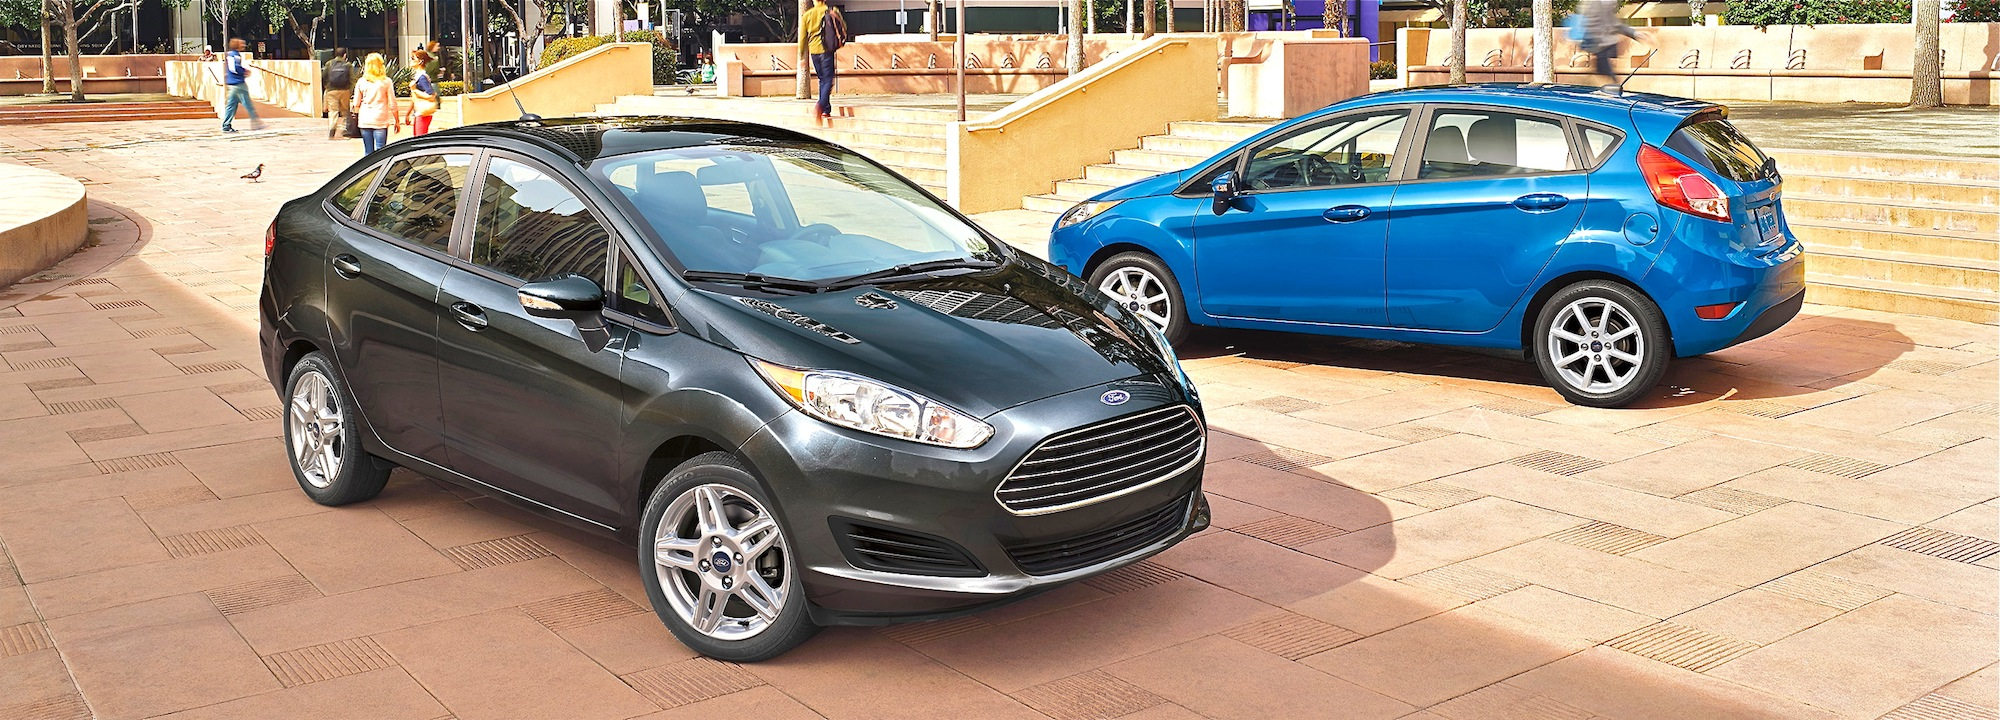 Ford Kills Passenger Cars: Brilliant Idea Or Horrible Mistake?